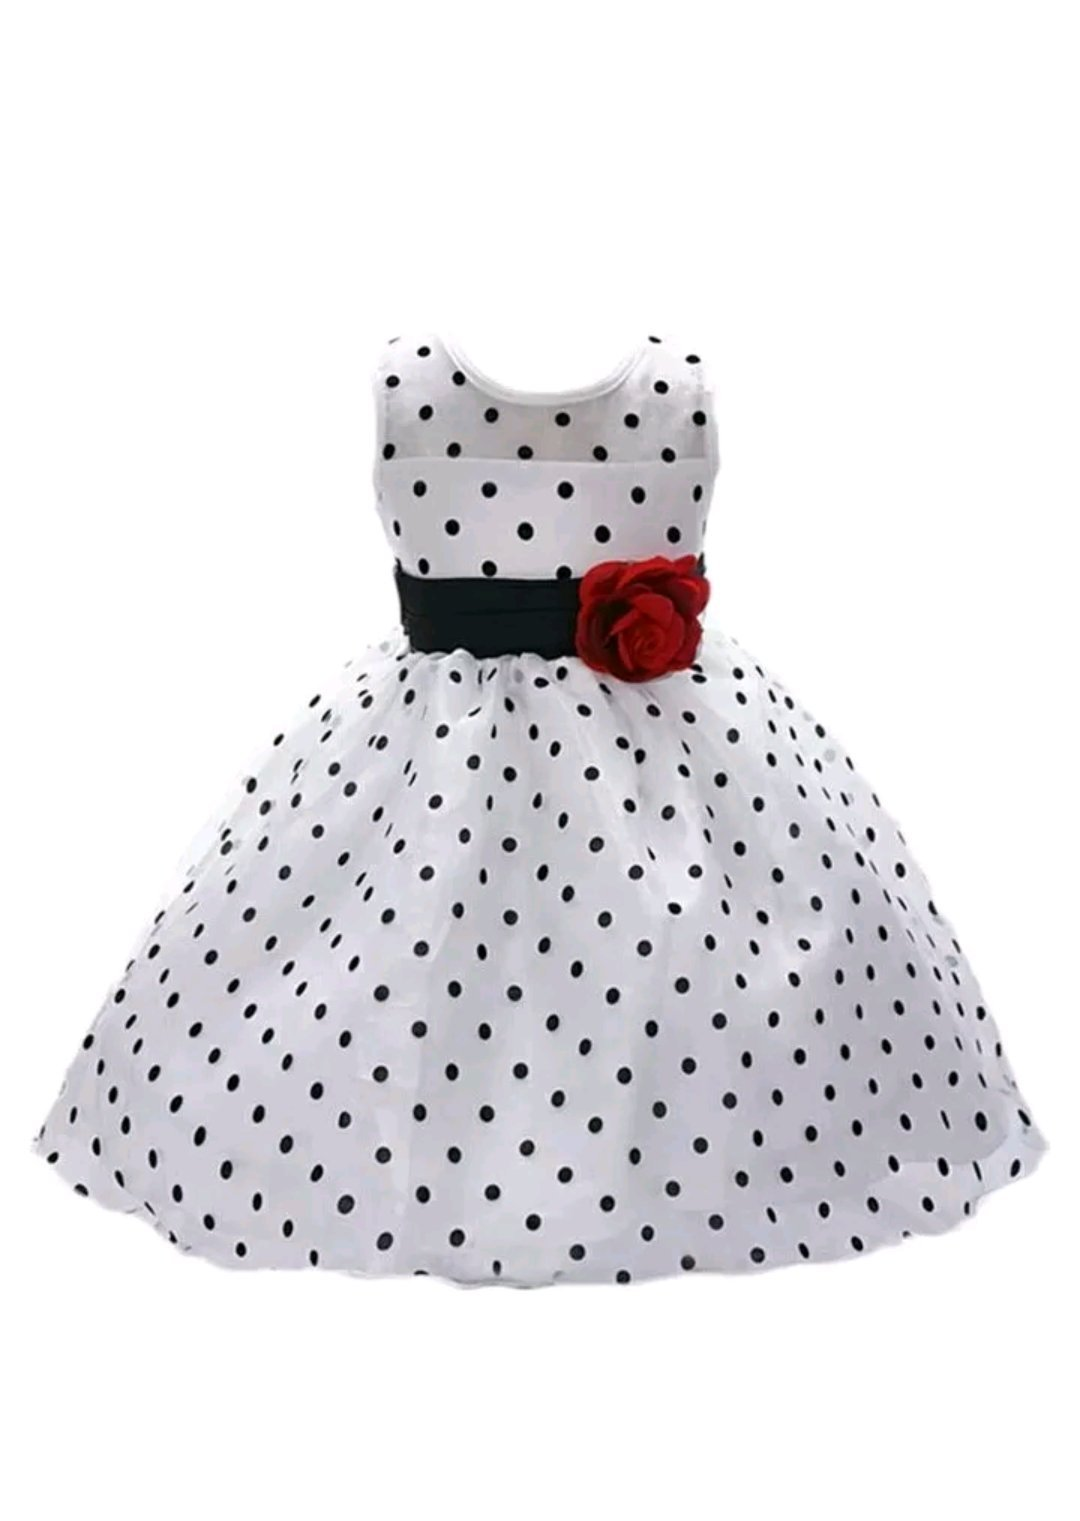 372dbfd4 A P Boutique Baby Girl Frock Party Dresses Birthday Outfits Black White  Polka Dot Dress